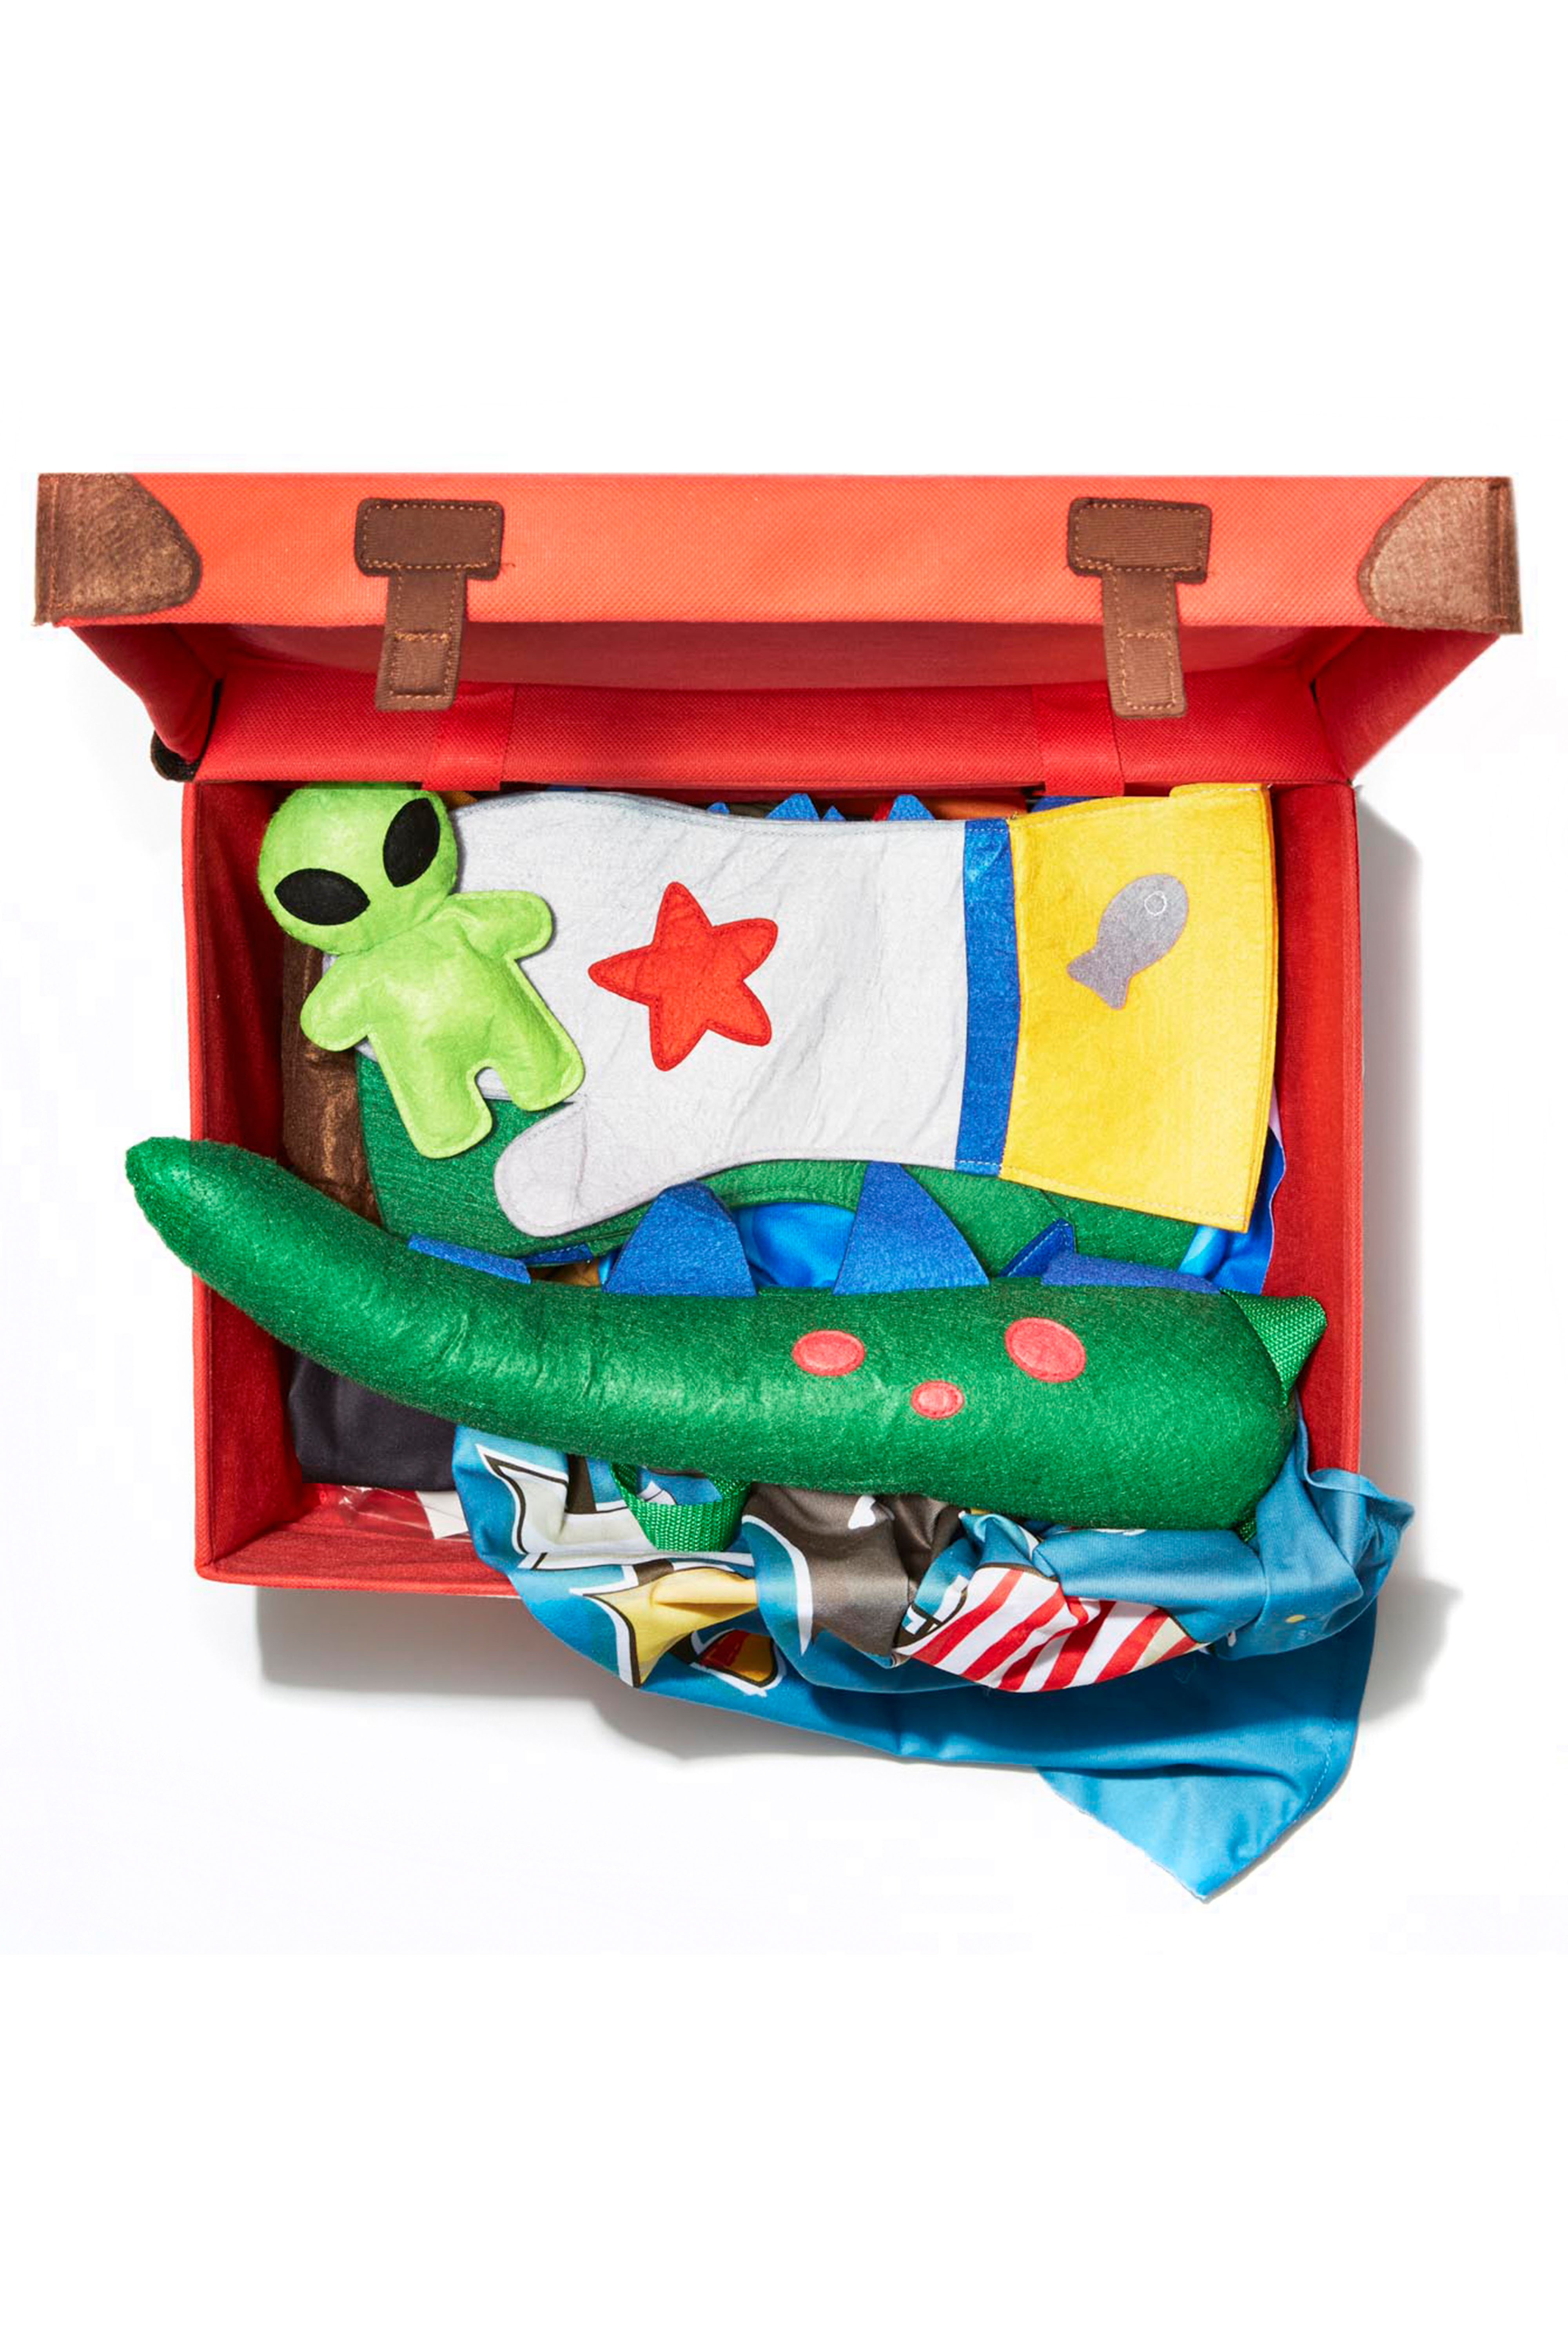 Best Toys for the Holidays Good Housekeeping Toy Awards 2016